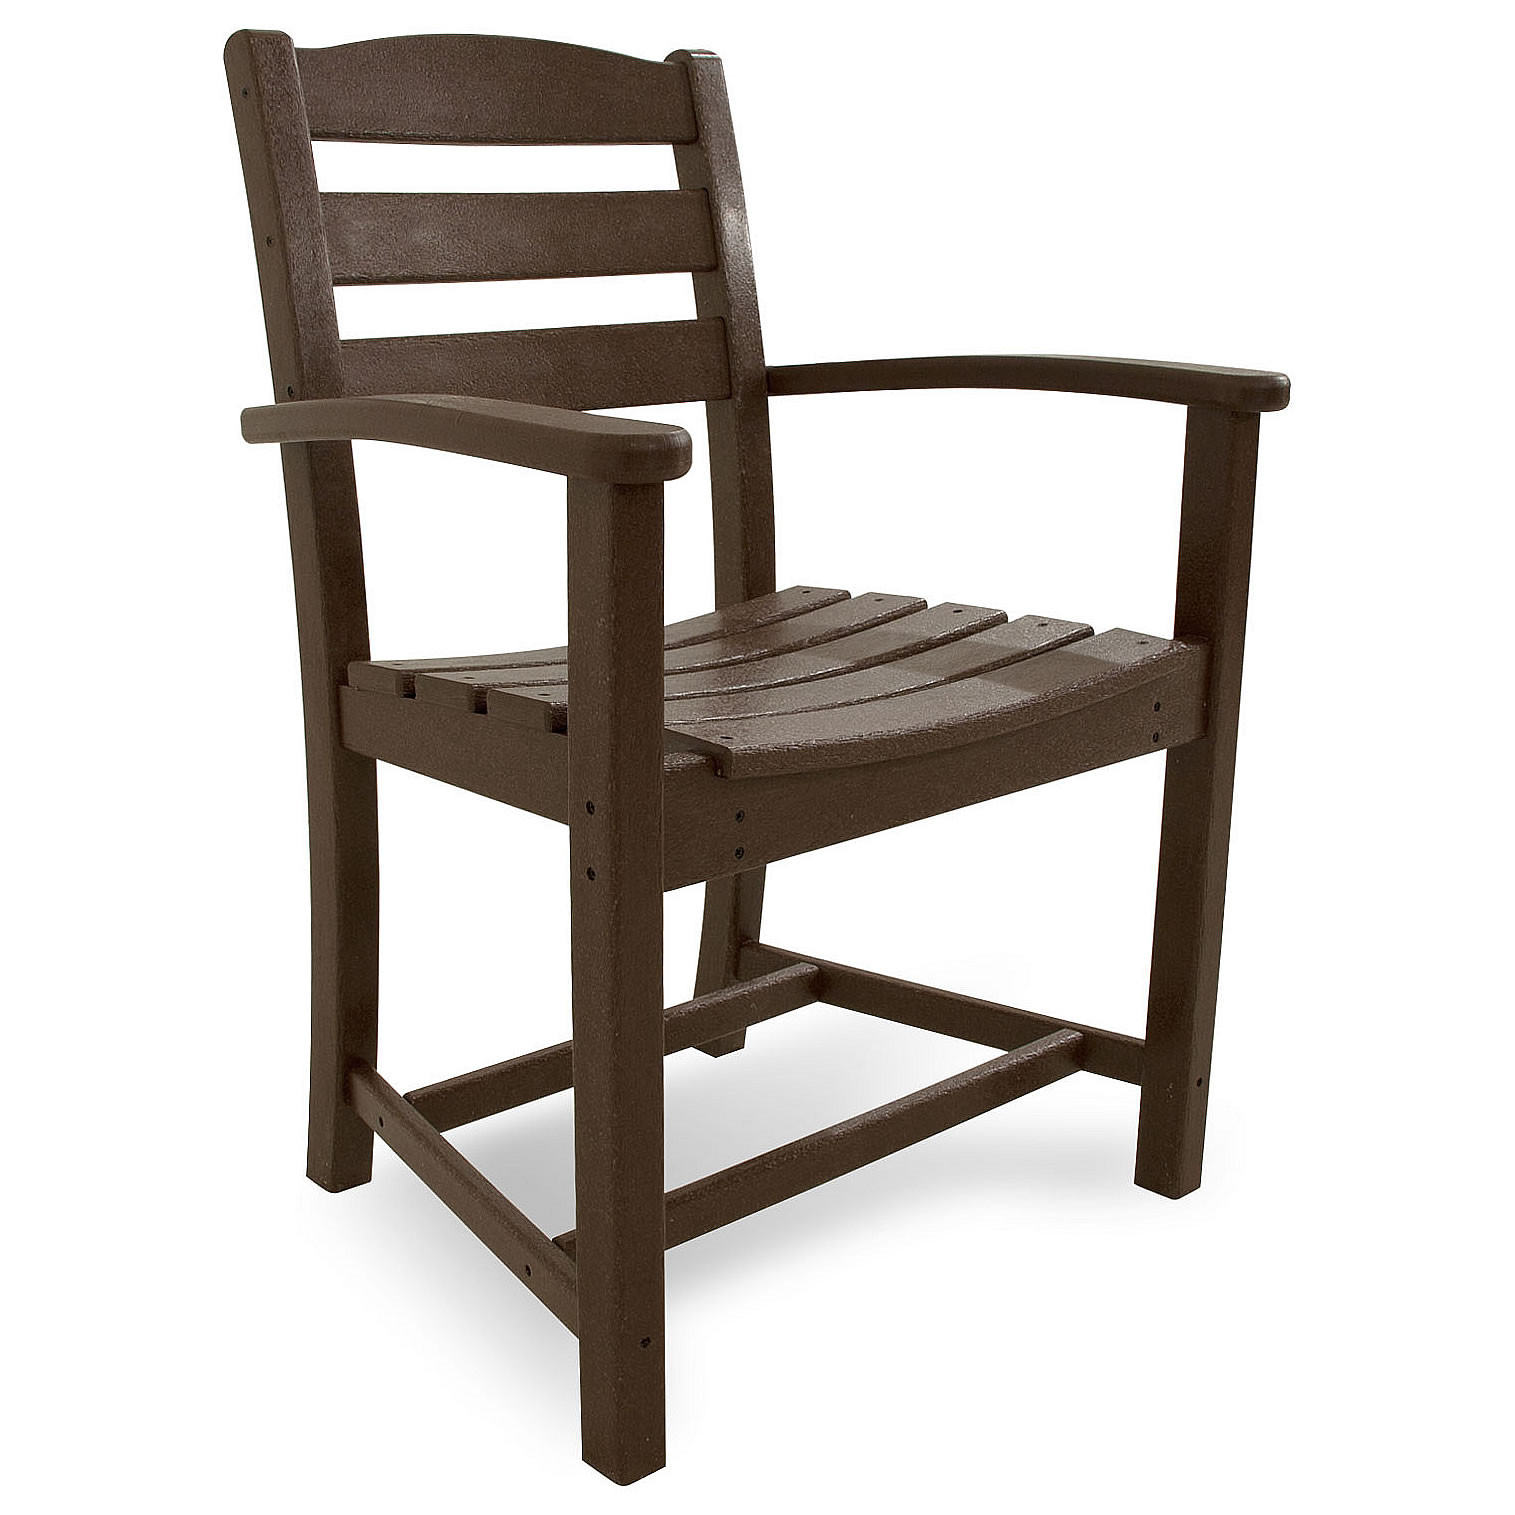 Polywood La Casa Cafe Arm Chair La Casa Cafe Polywood Outdoor Furniture Collections